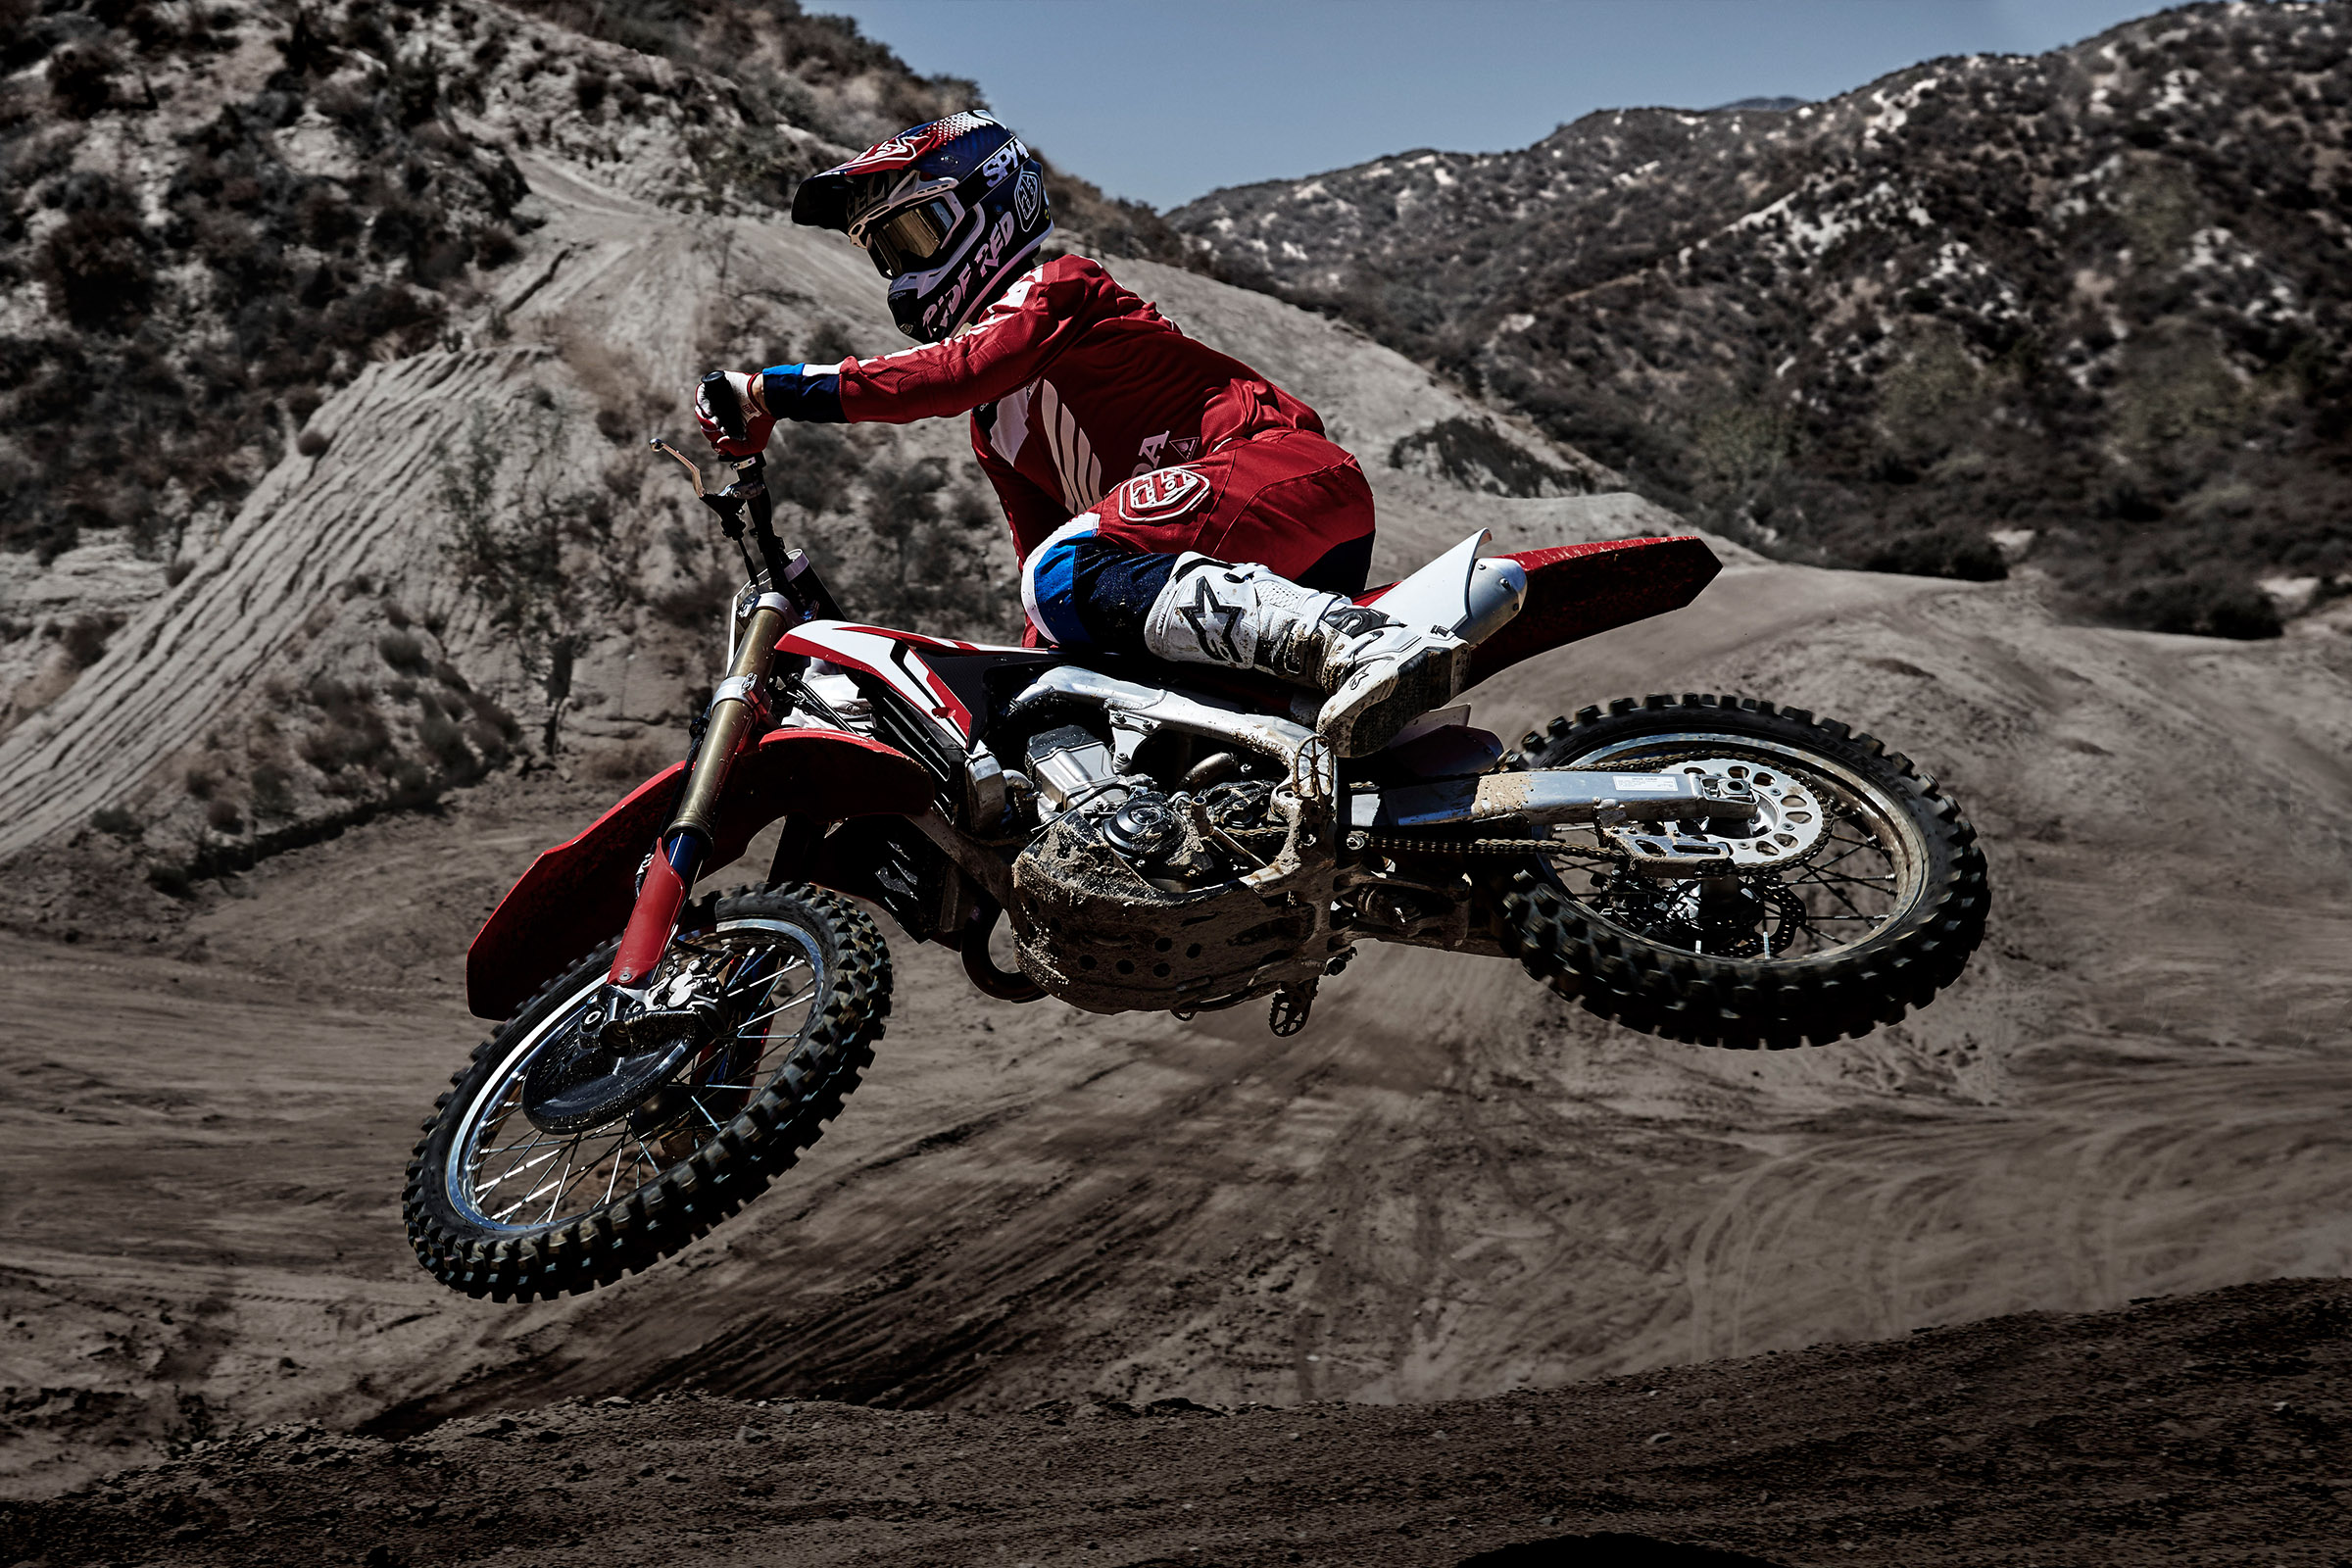 2017_CRF450R ACTION.jpg